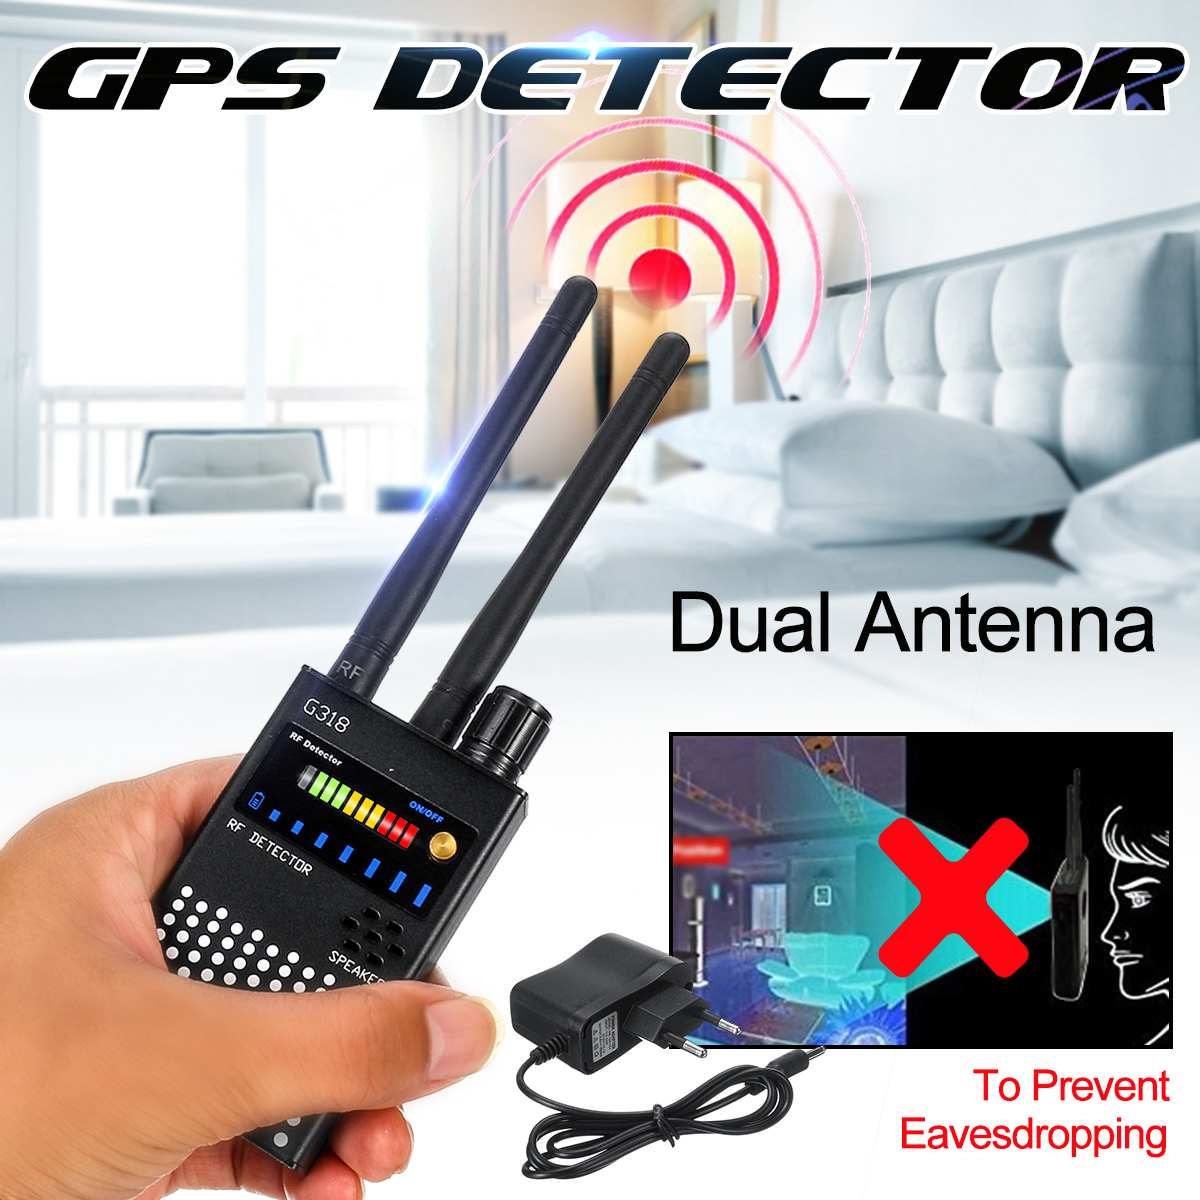 G318A Dual Antenna Anti-Spy GPS Wireless Signal Automatic Detector Finder Racker Frequency Scan Sweeper Protect Security